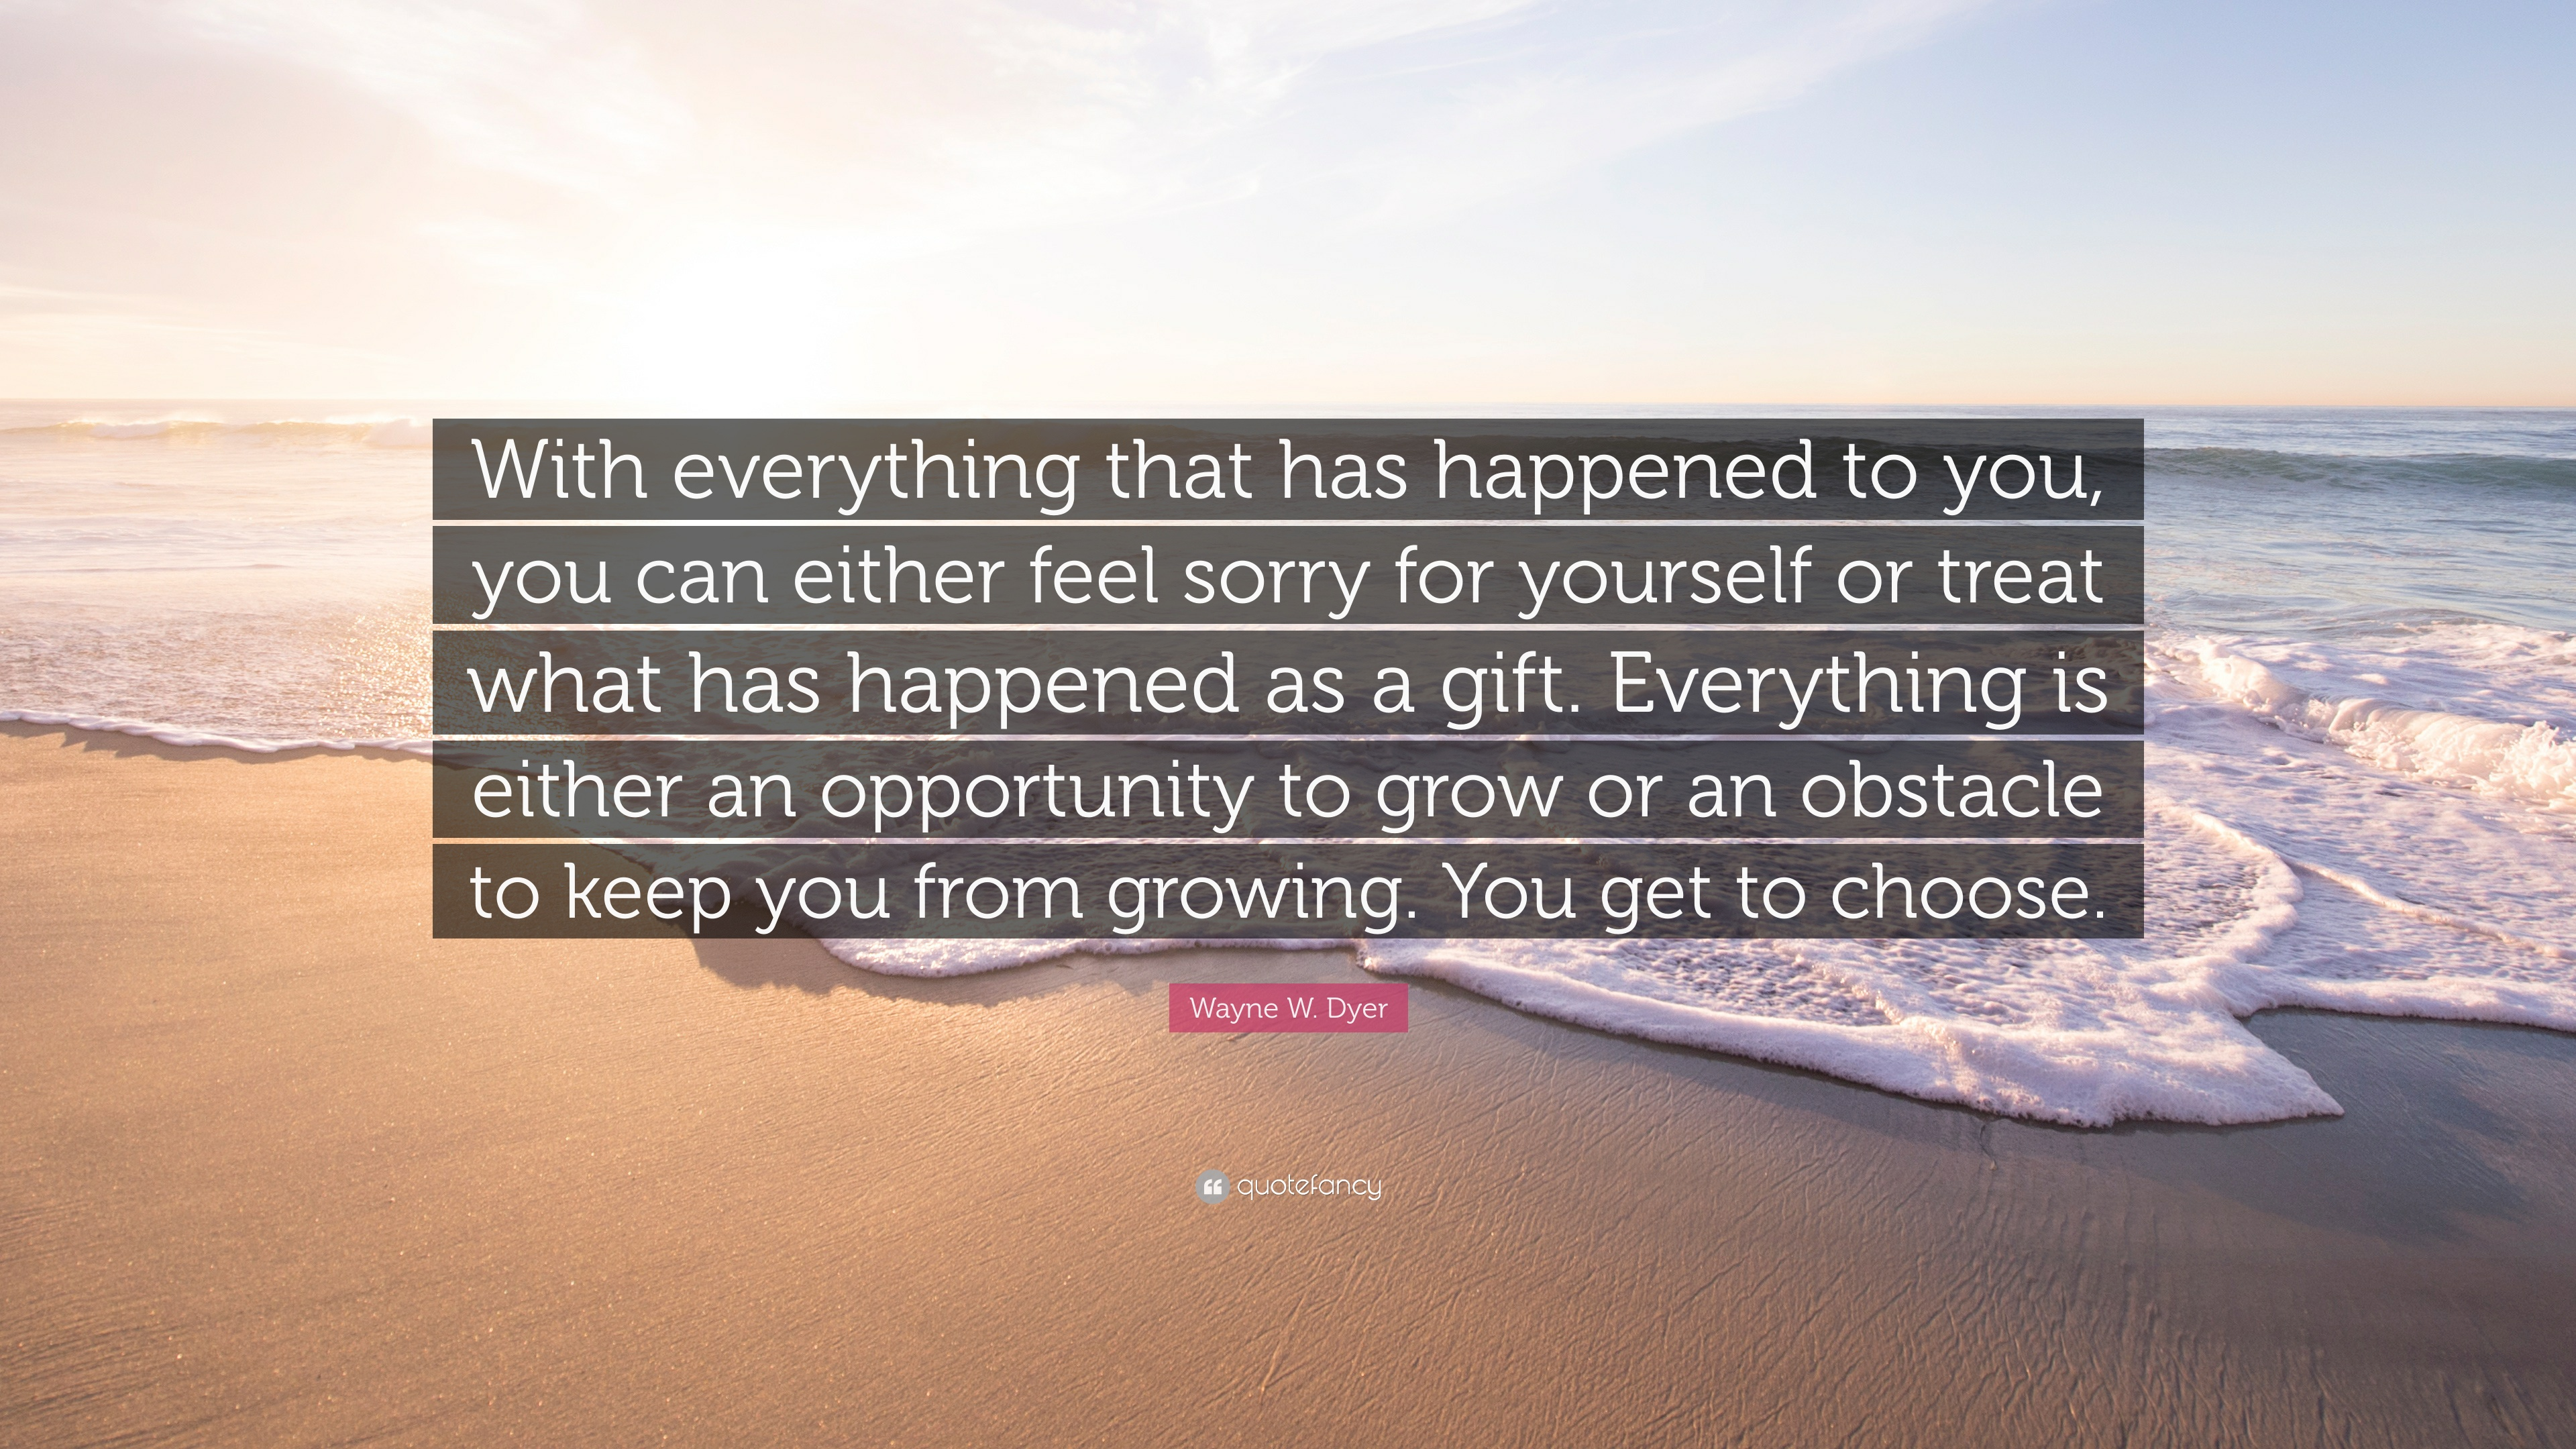 Wayne W Dyer Quote With Everything That Has Happened To You You